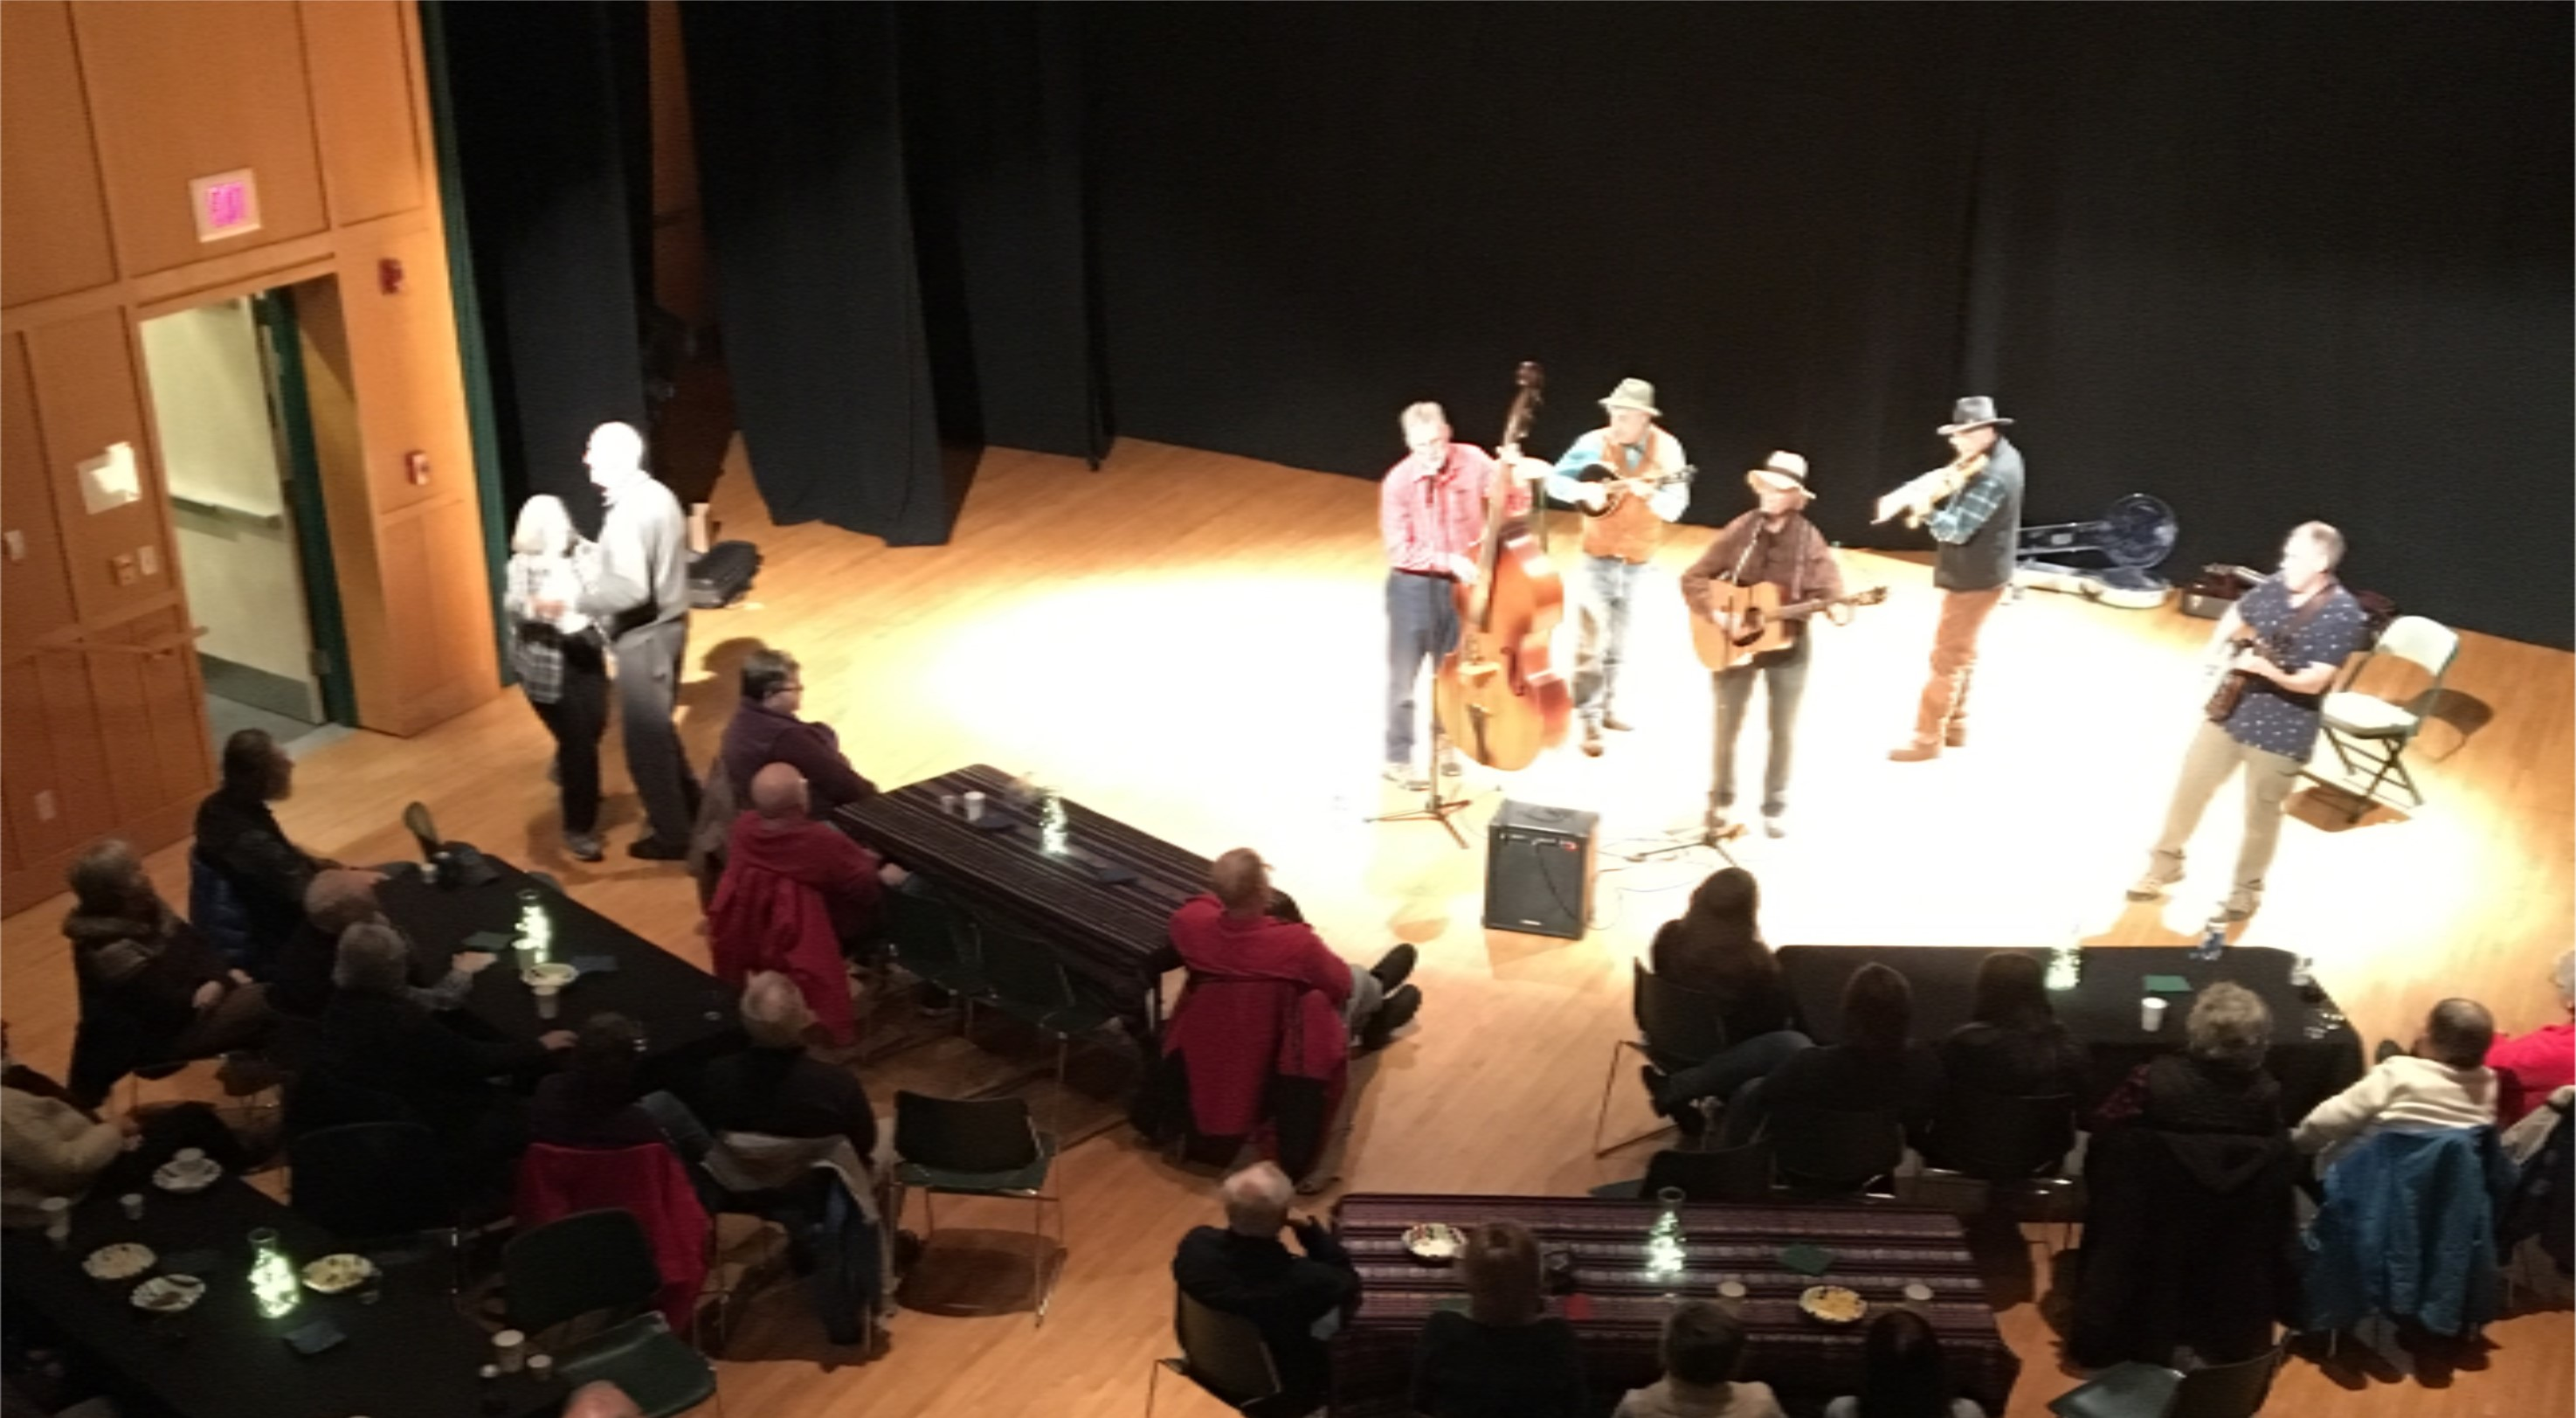 Adirondack Mountain Bluegrass performing at Tannery Pond